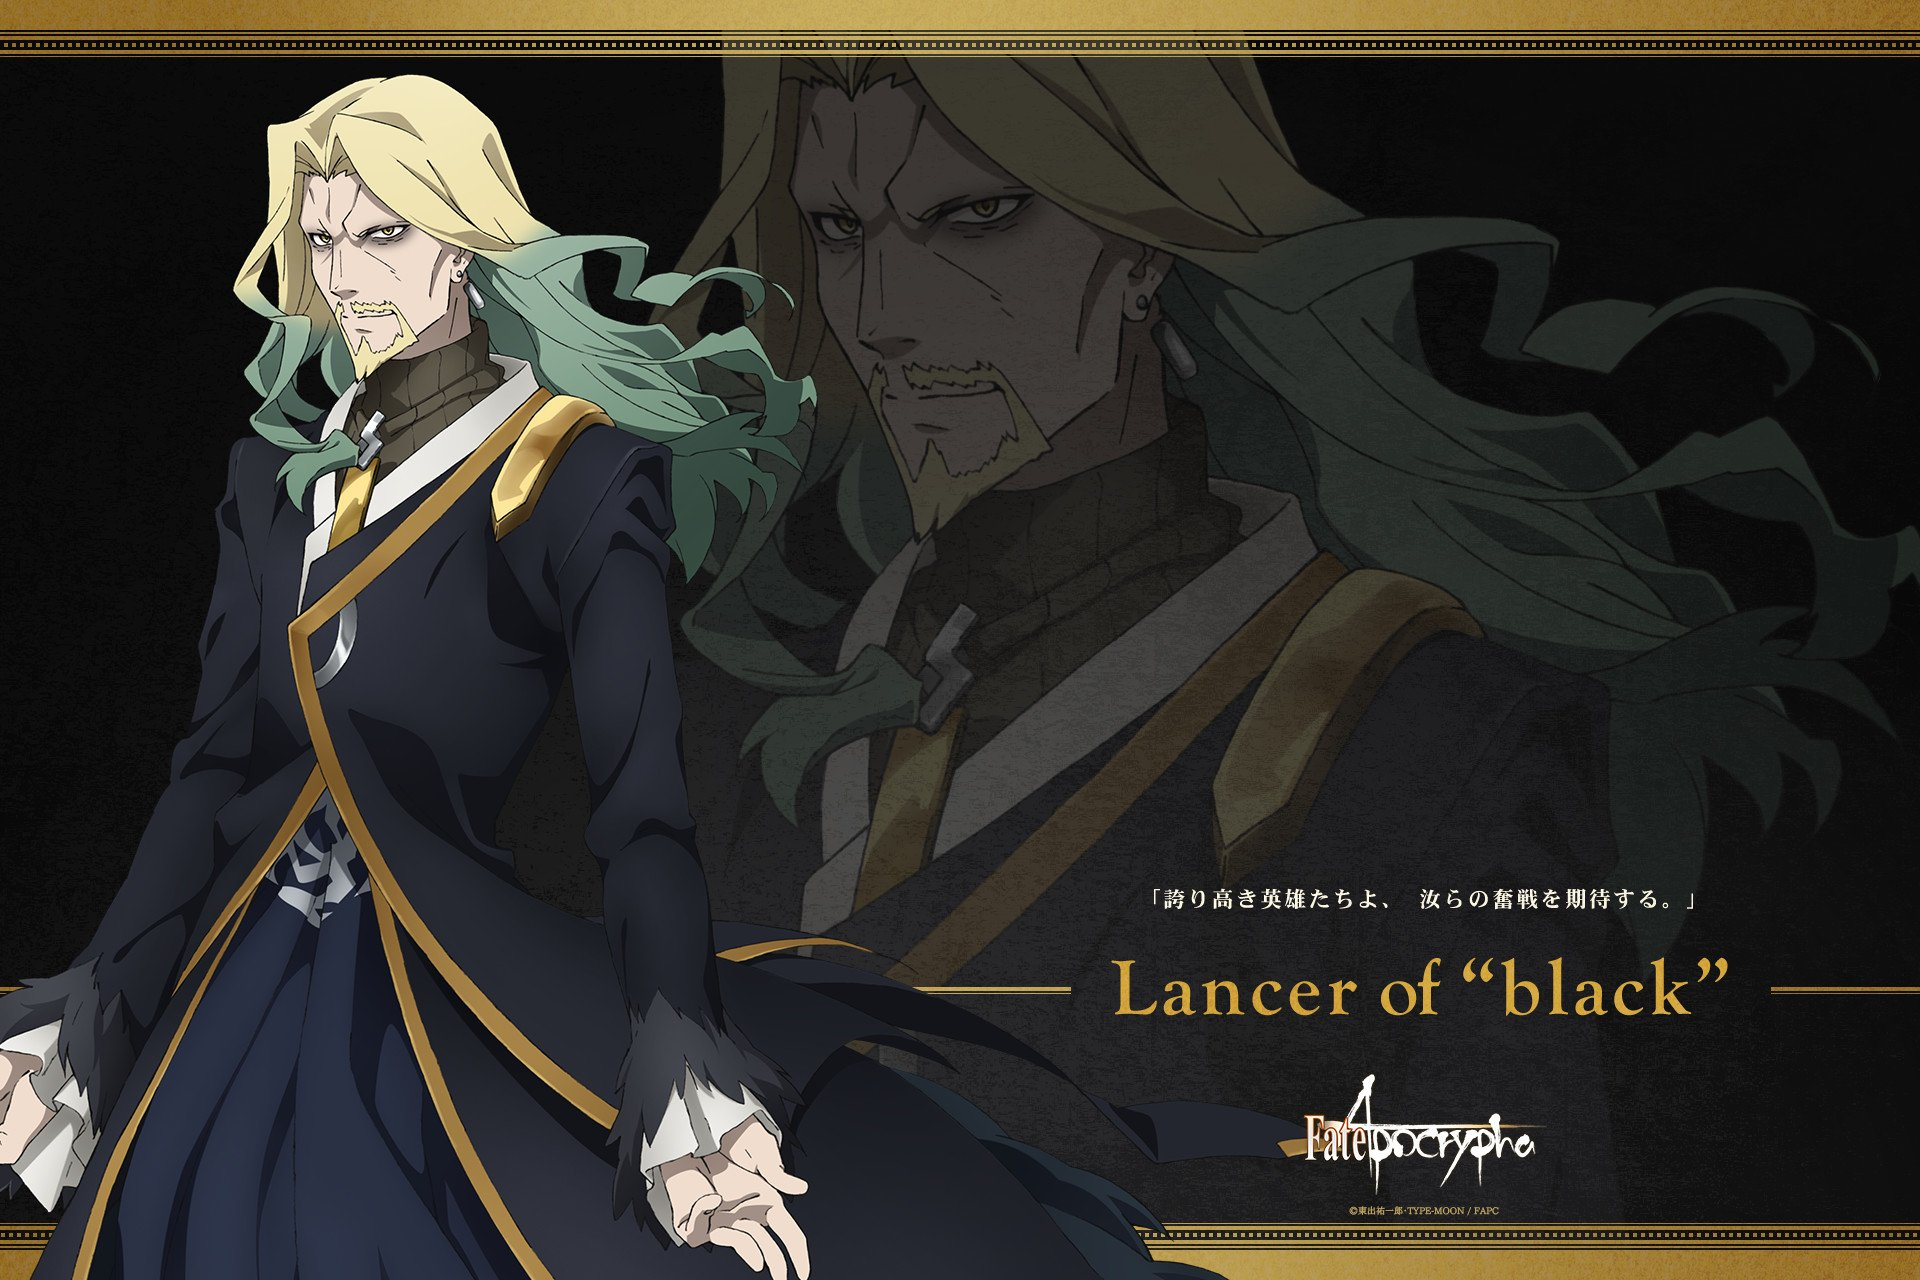 Anime - Fate/Apocrypha Lancer of Black (Fate/Apocrypha) Wallpaper